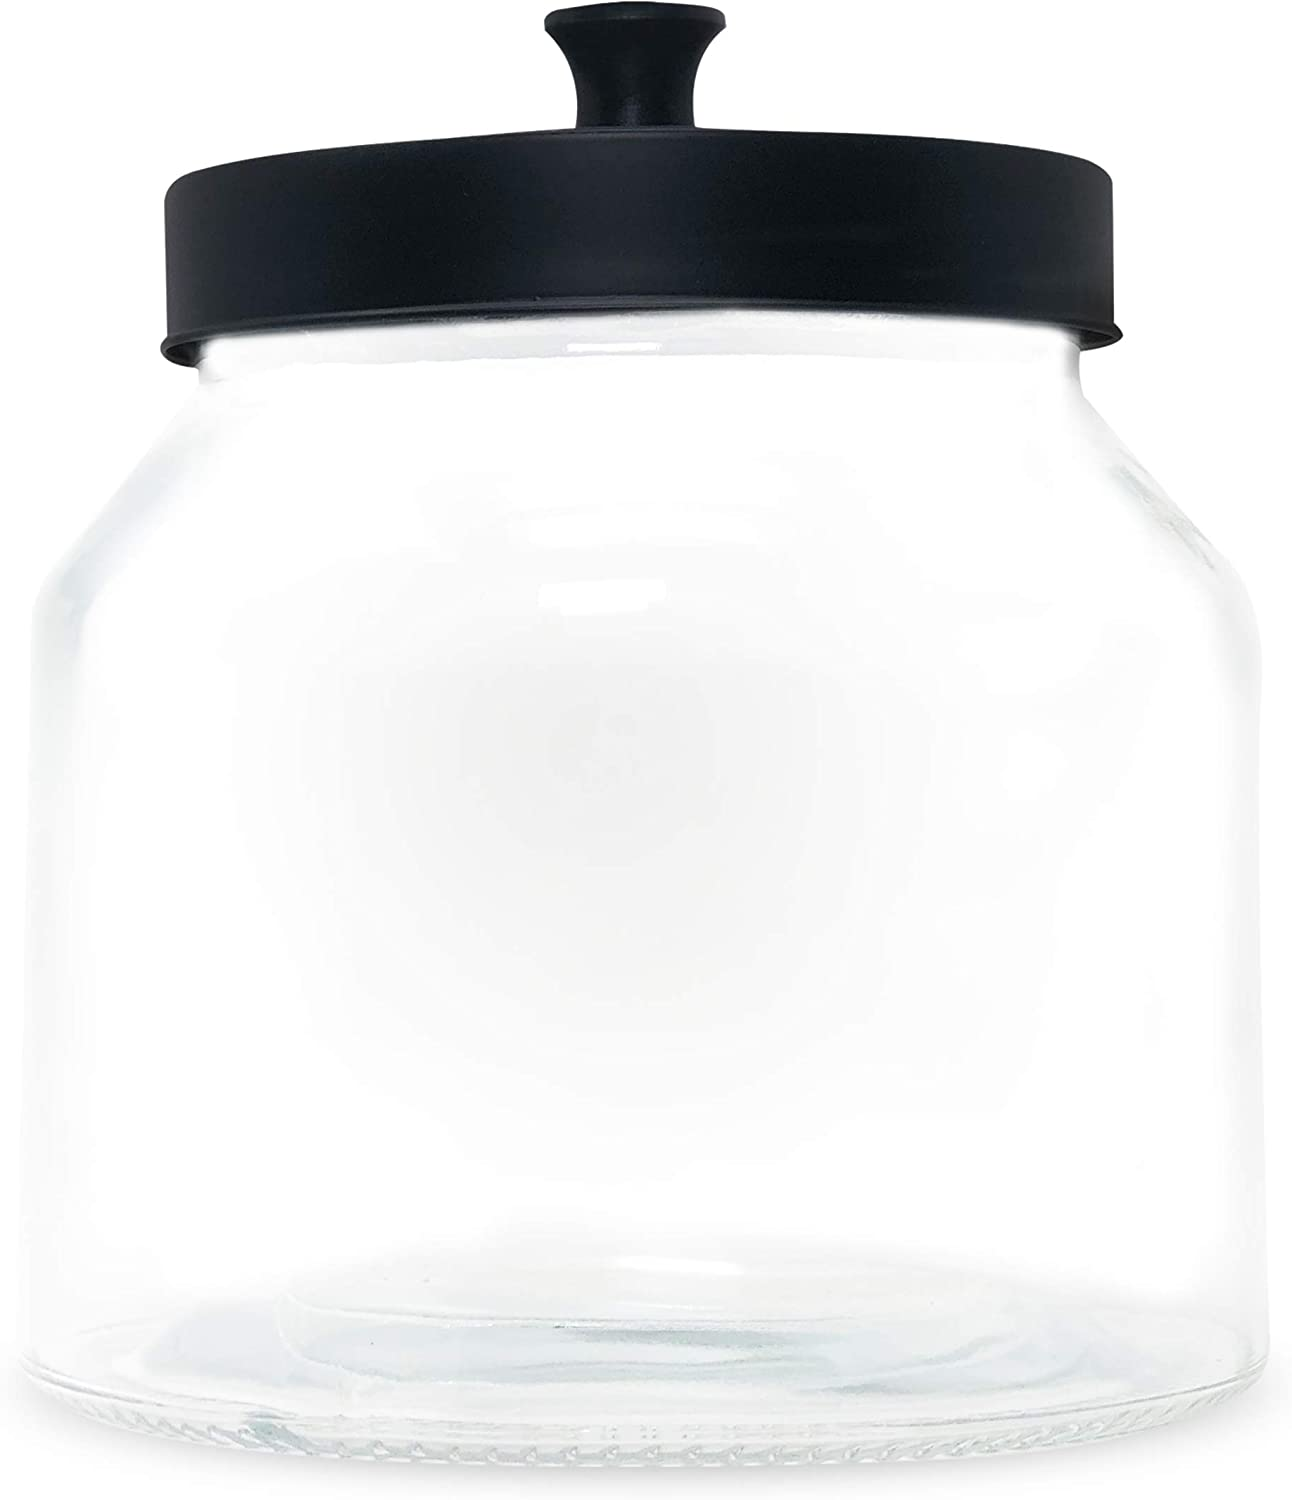 Clear Glass Storage Container Jar with Metal Lid for Kitchen Pantry, Recyclable Canister for Cookie, Dry Fruits, Spices, Transparent Glass Jars with Airtight Lids (16 cm x 16 cm x 18 cm)